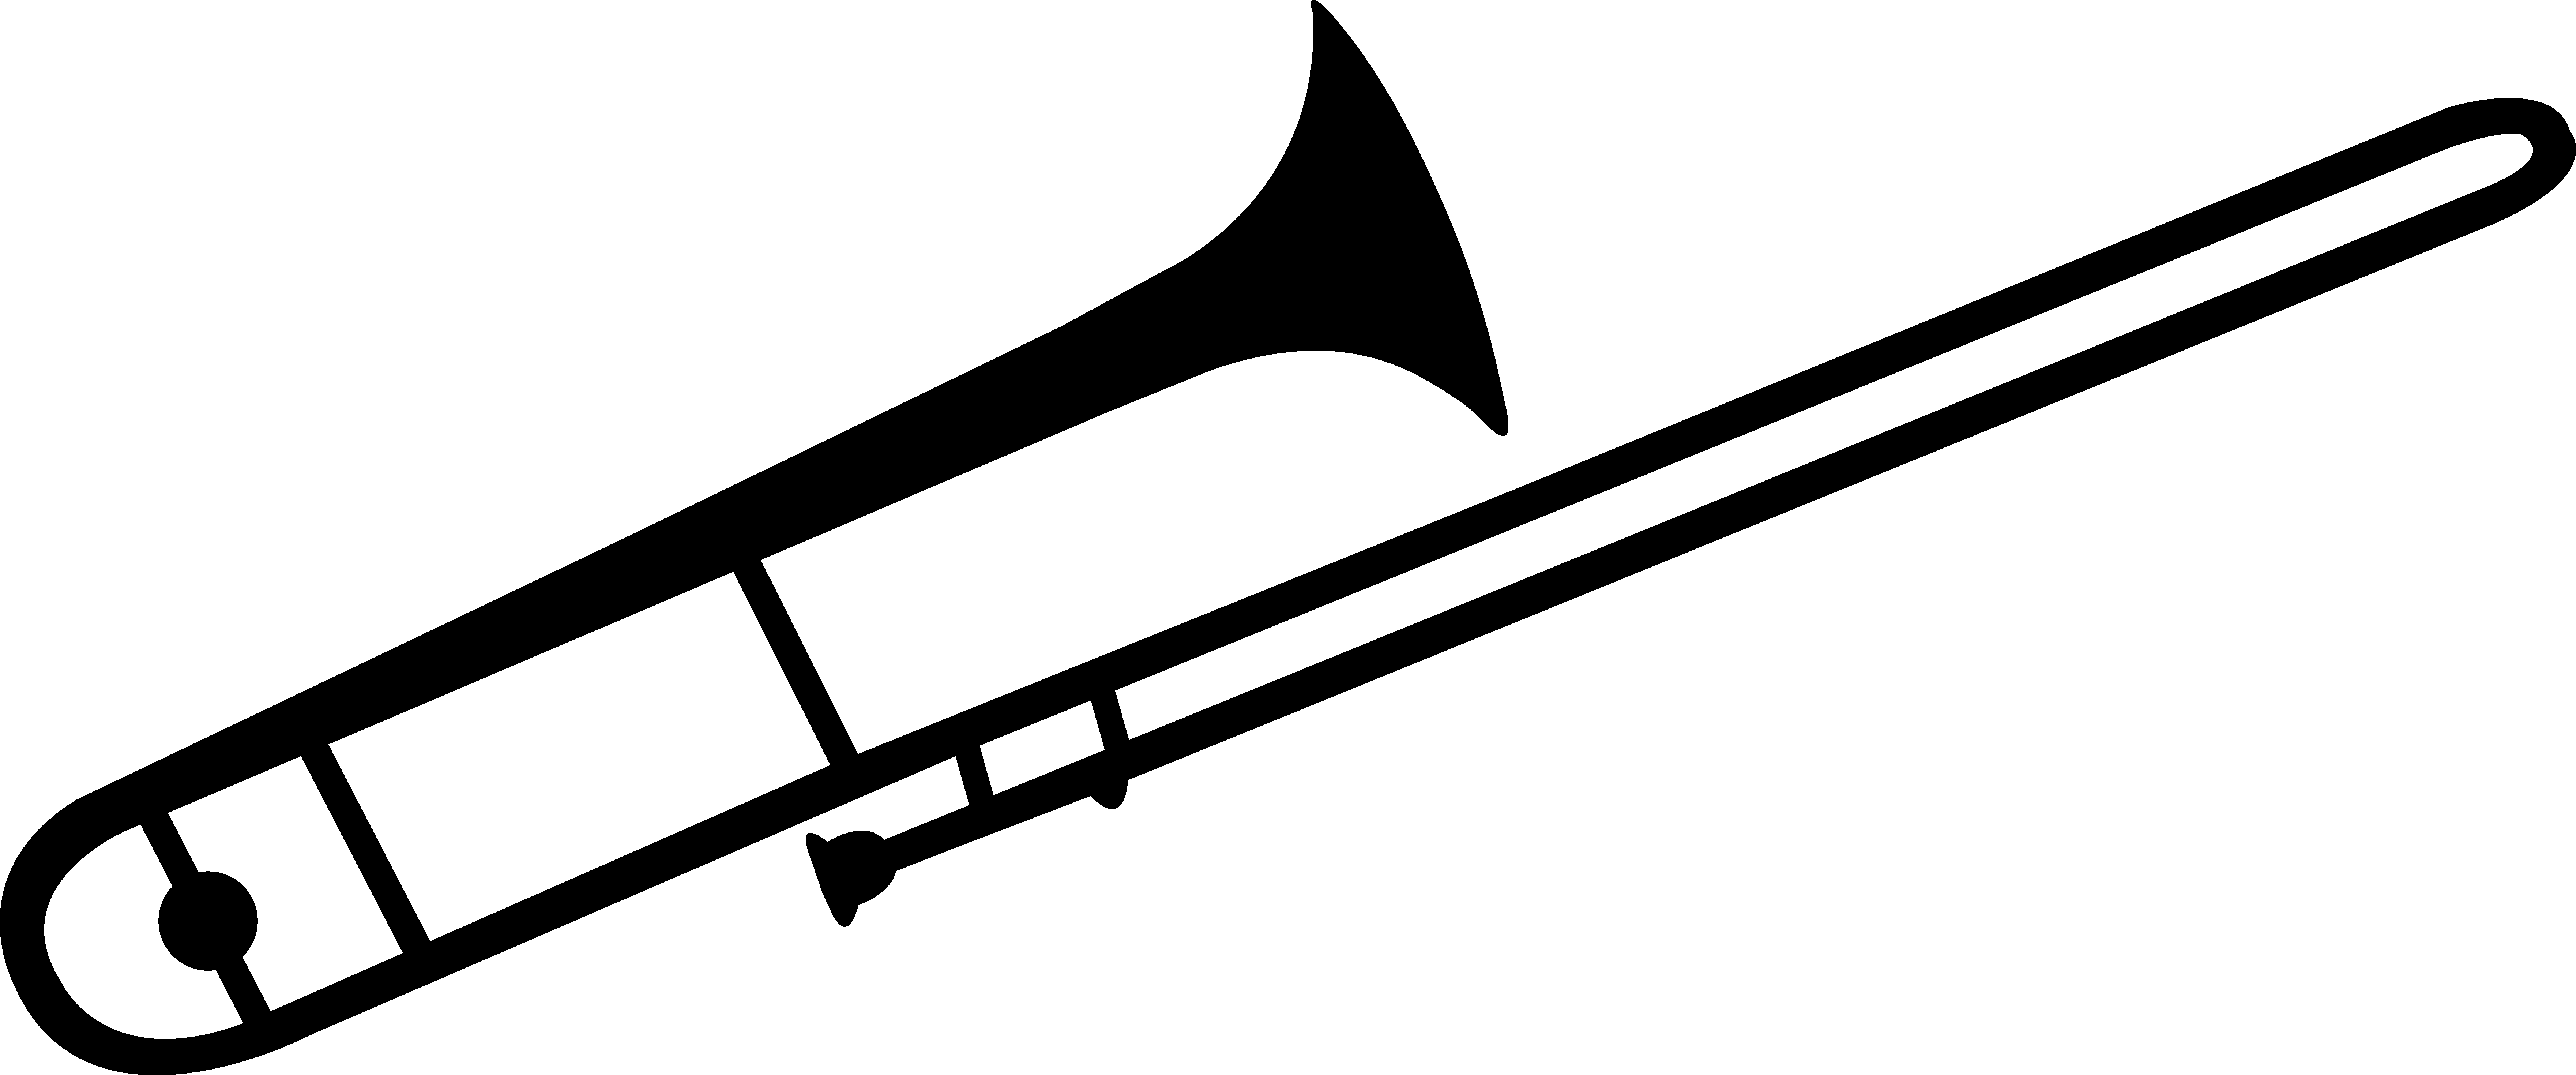 Free Trombone Cliparts Download Free Clip Art Free Clip Art On Clipart Library